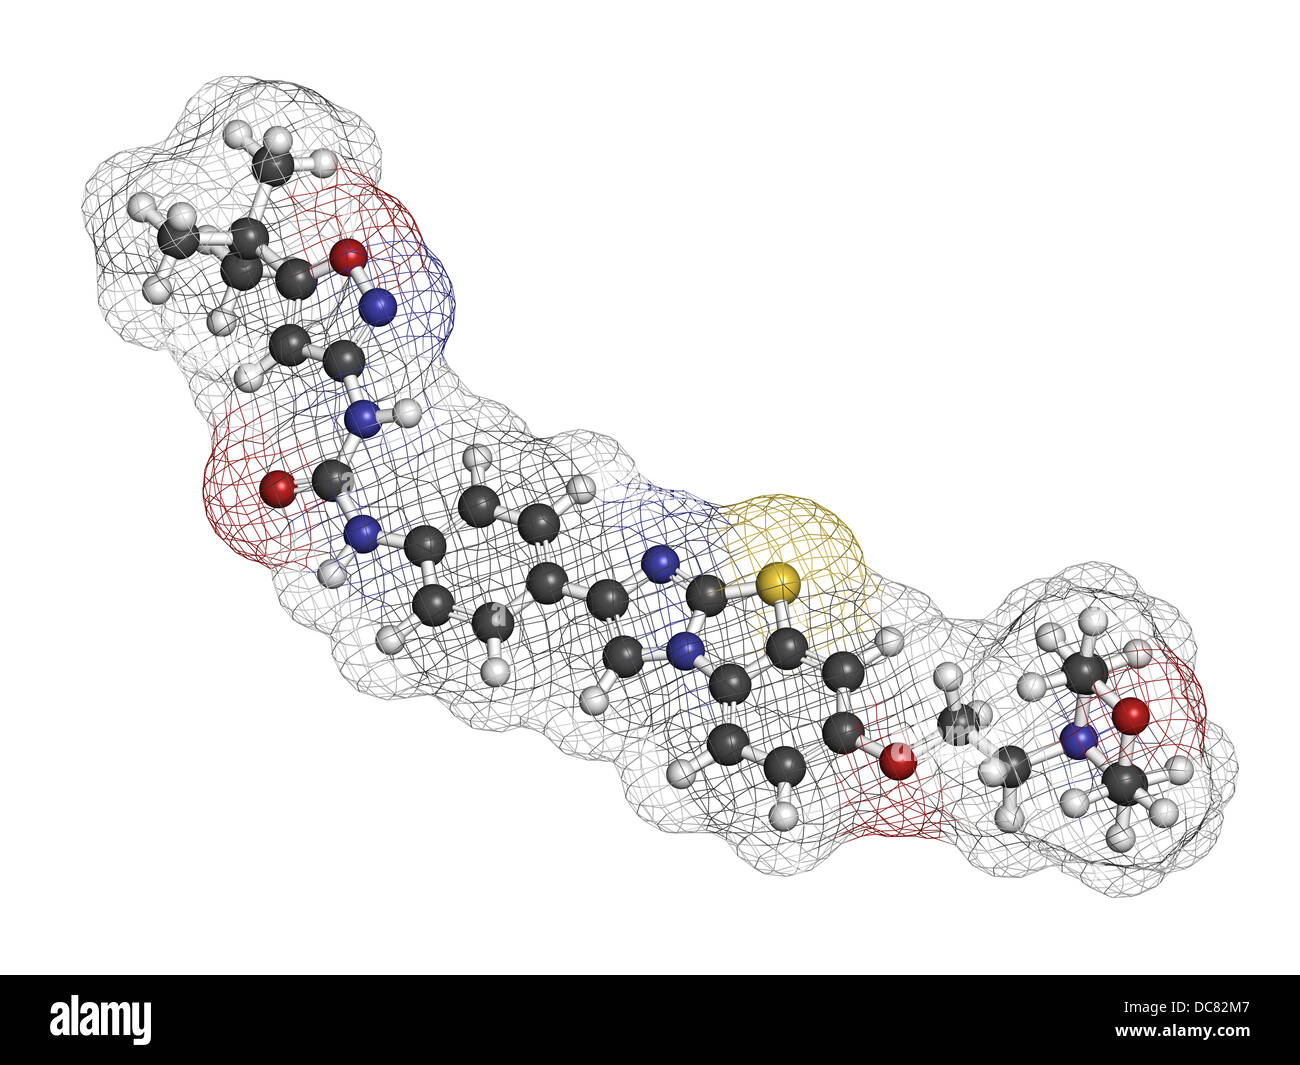 Quizartinib investigational acute myeloid leukemia (AML) drug, chemical structure Atoms are represented as spheres. Stock Photo